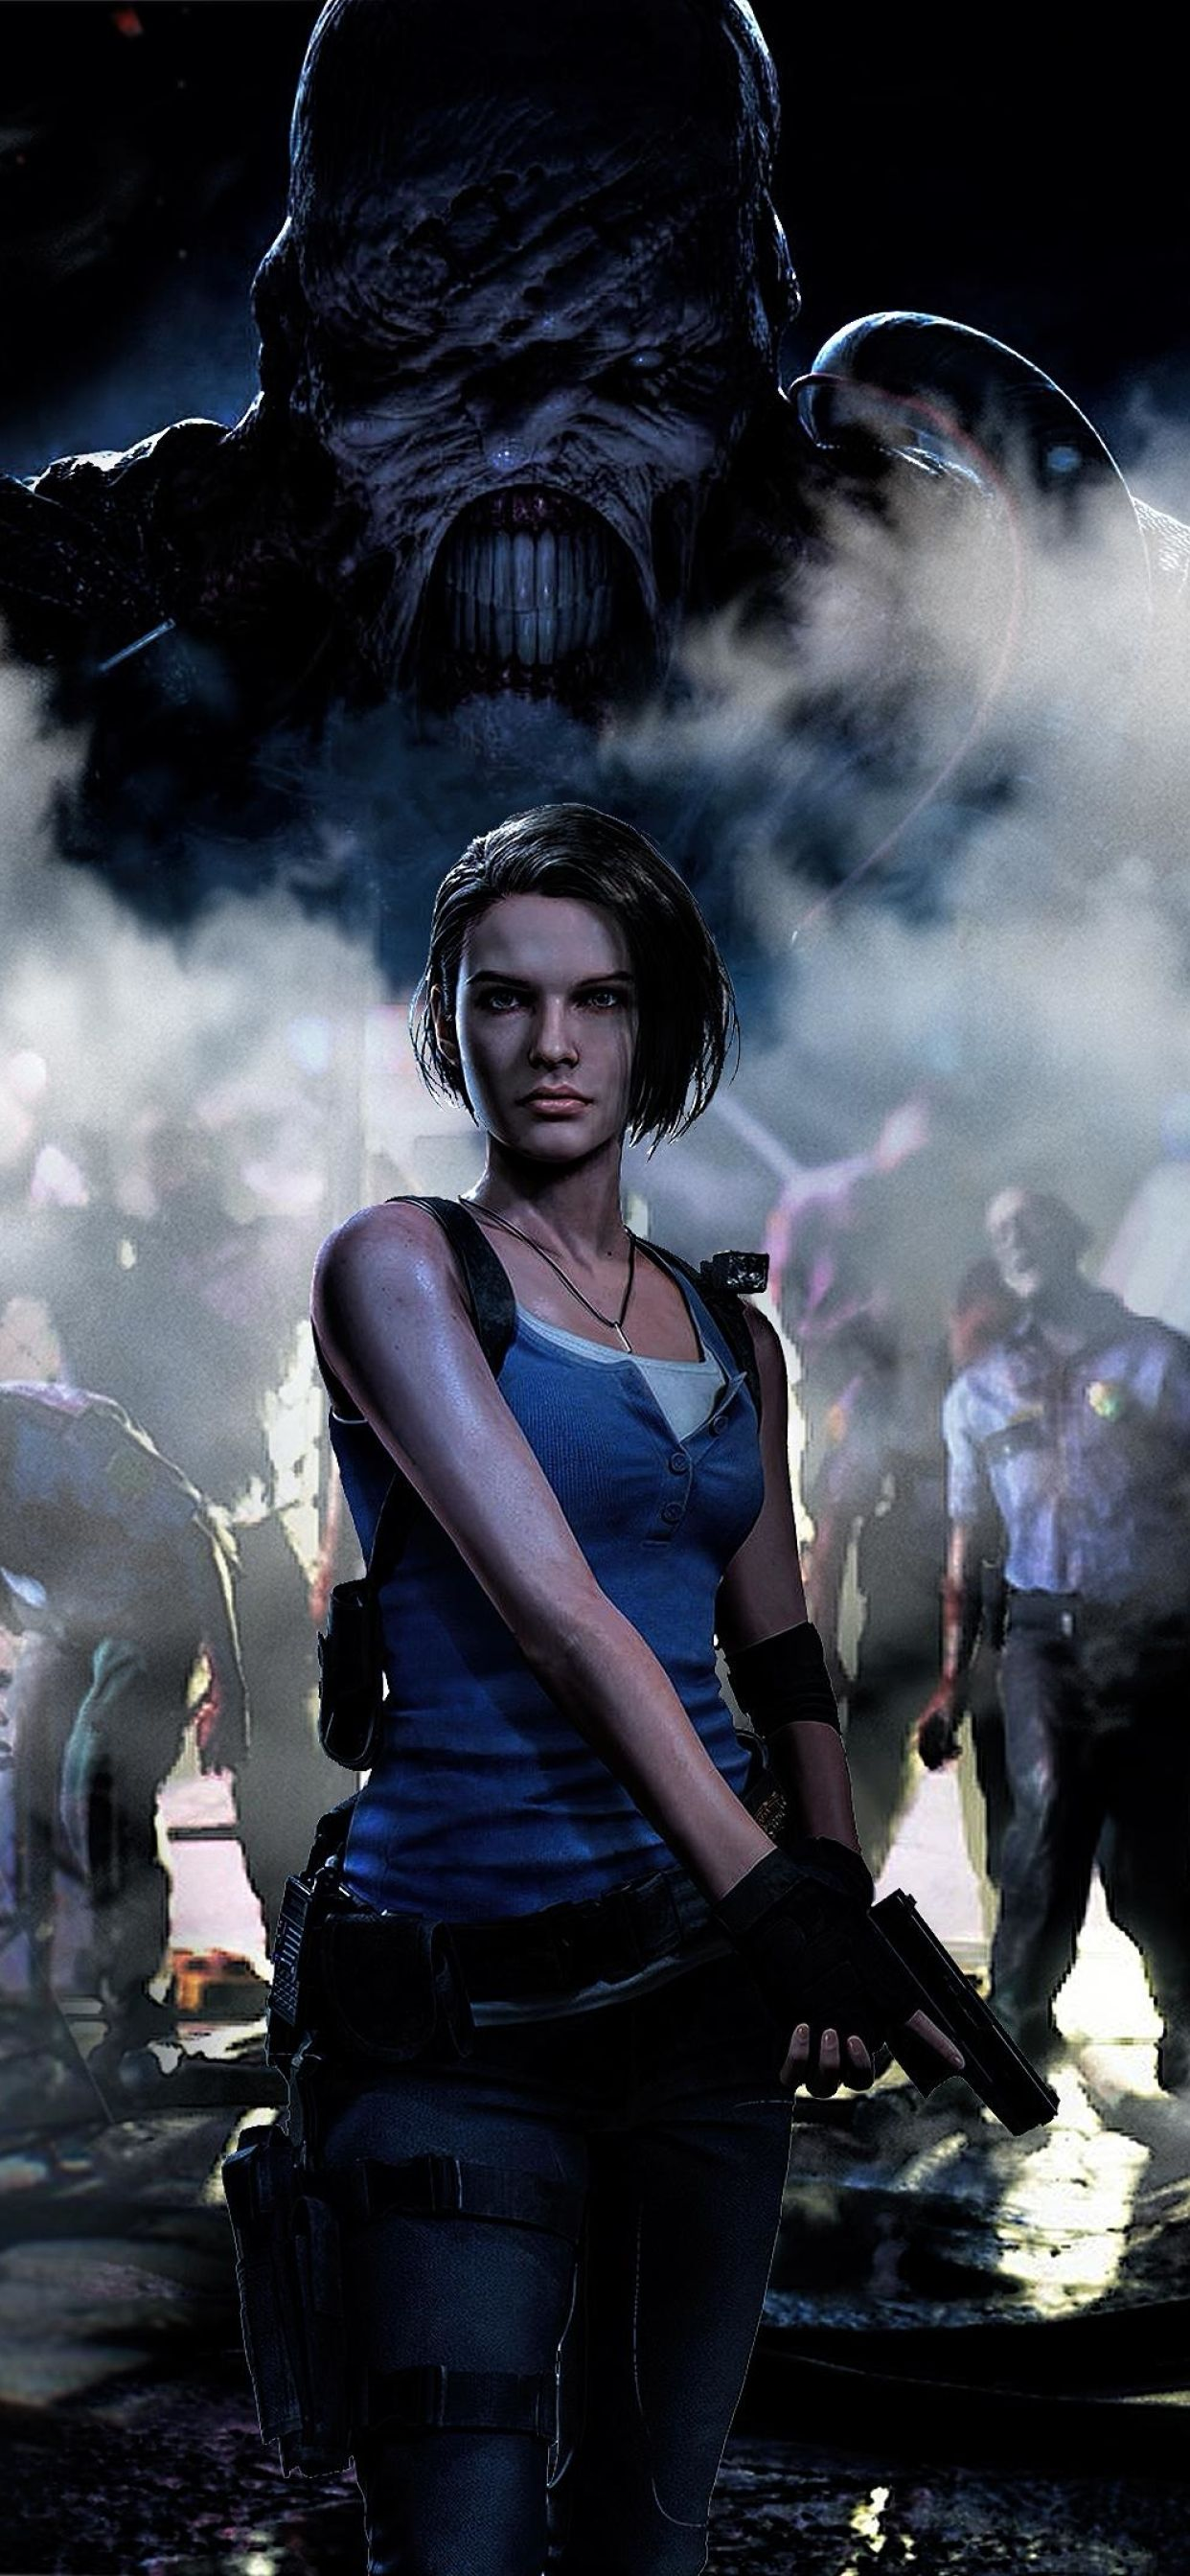 resident evil 3 wallpaper iphone